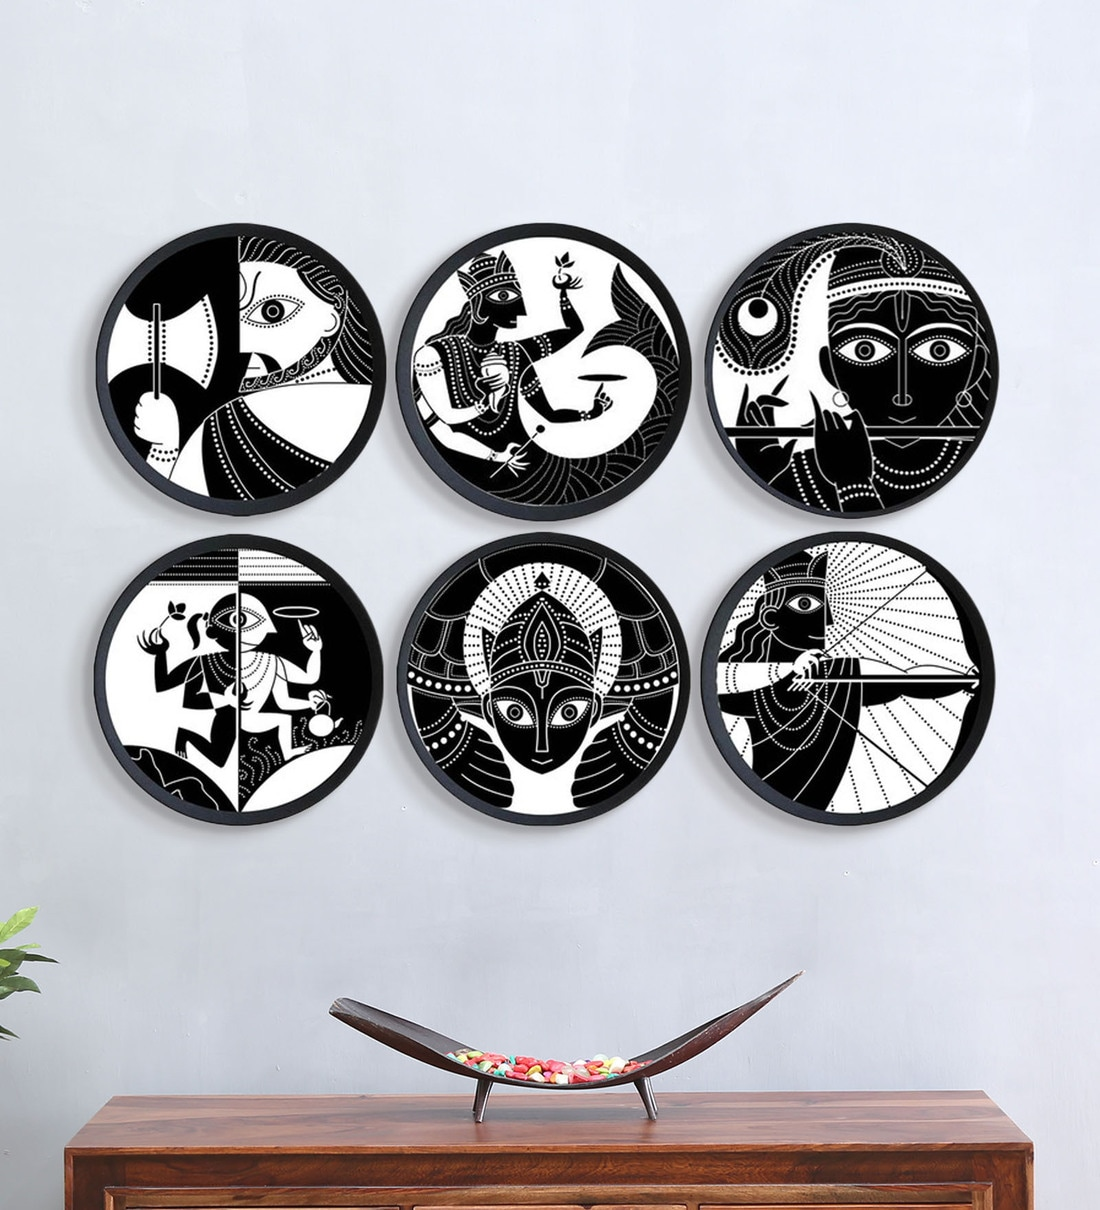 Buy Black Ceramic Indian Hand Painted Wall Decor Plates Set Of 6 By Craftedindia Online Wall Plates Wall Art Home Decor Pepperfry Product